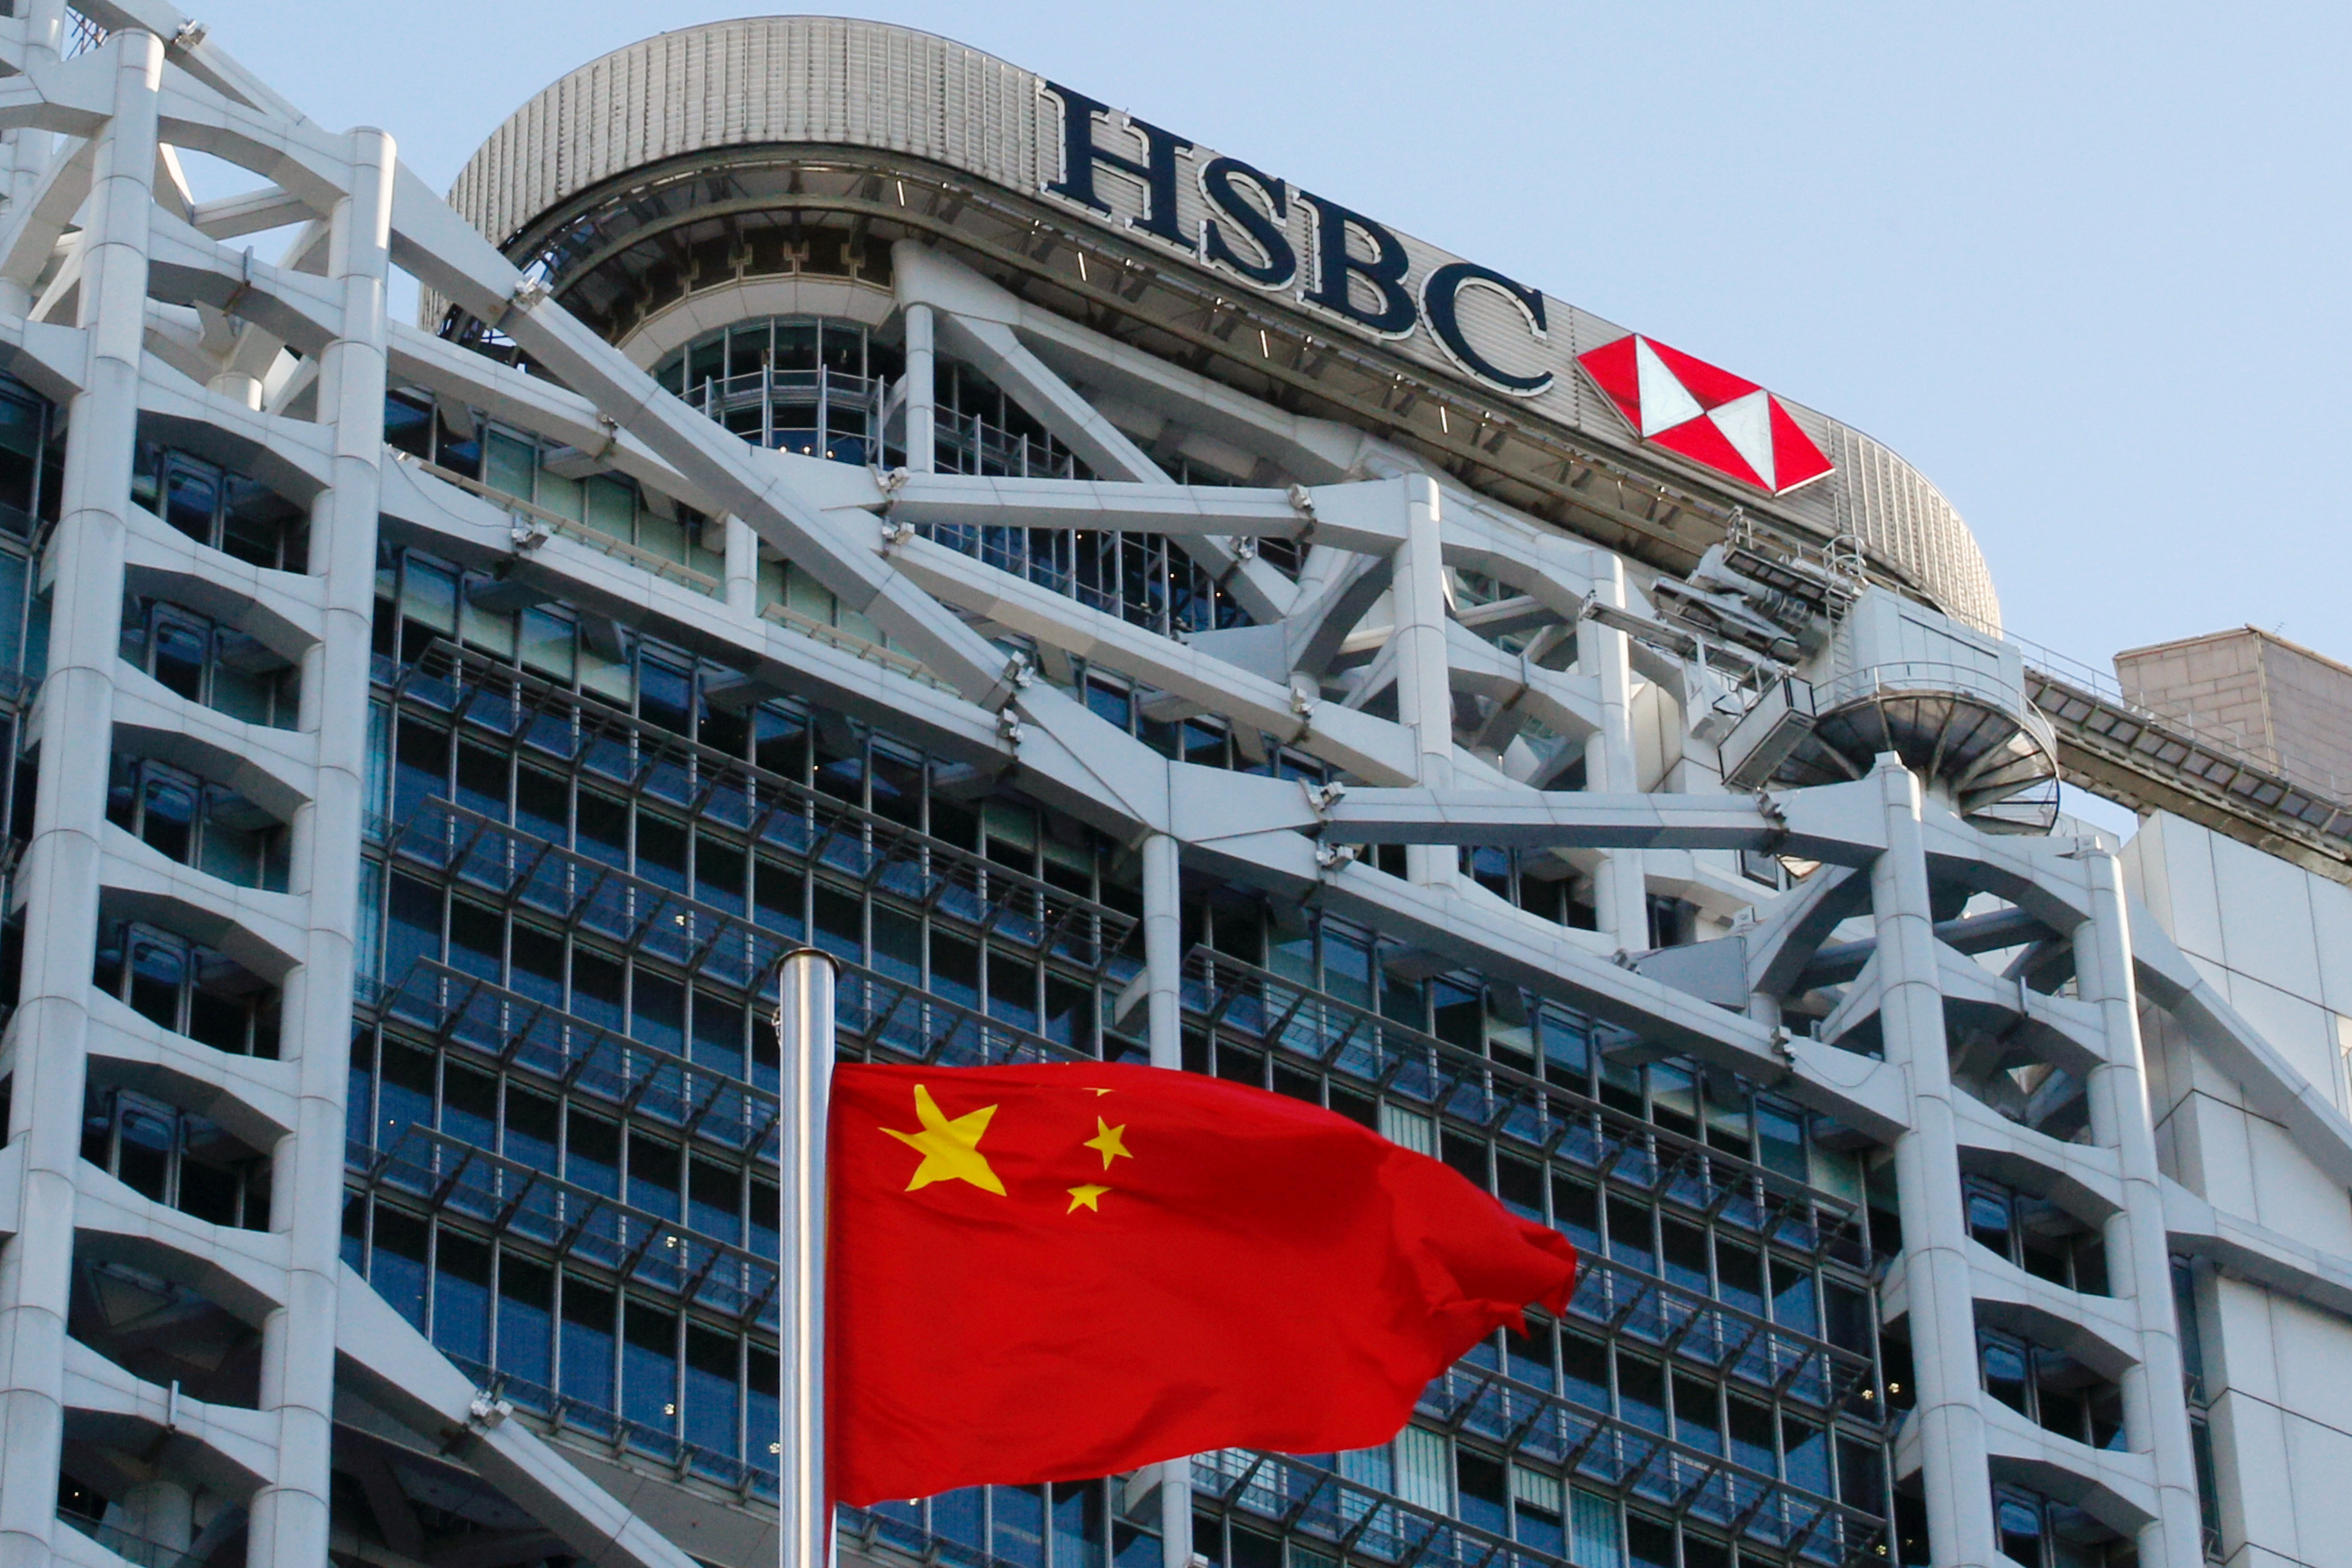 A Chinese national flag flies in front of HSBC headquarters in Hong Kong, China, July 28, 2020. REUTERS/Tyrone Siu